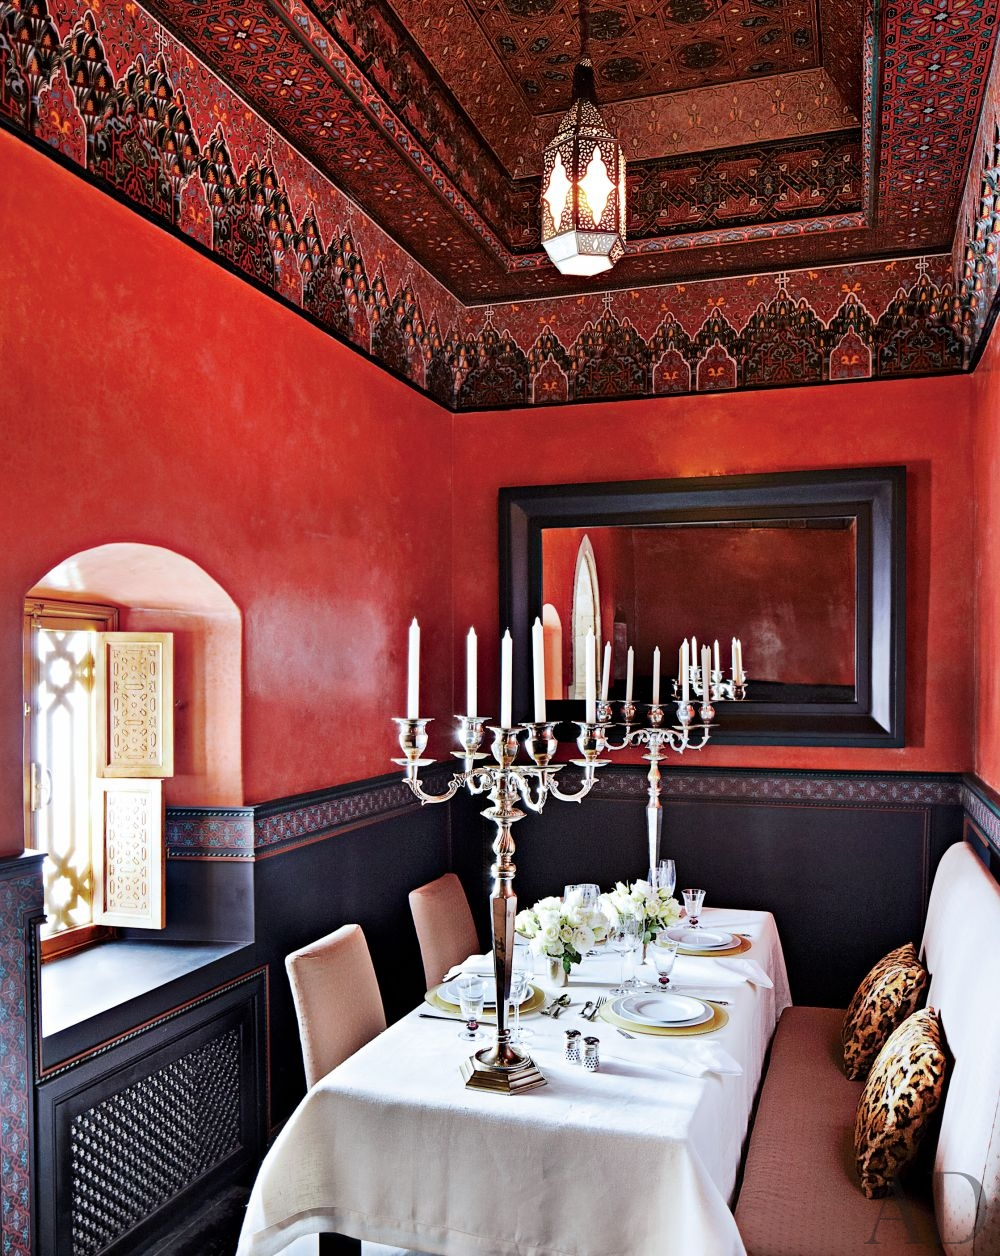 moroccan decor tiles red wall better decorating bible blog ideas how to exotic-dining-room-sg-designs-ltd-essaouira-morocco-201205-2_1000-watermarked